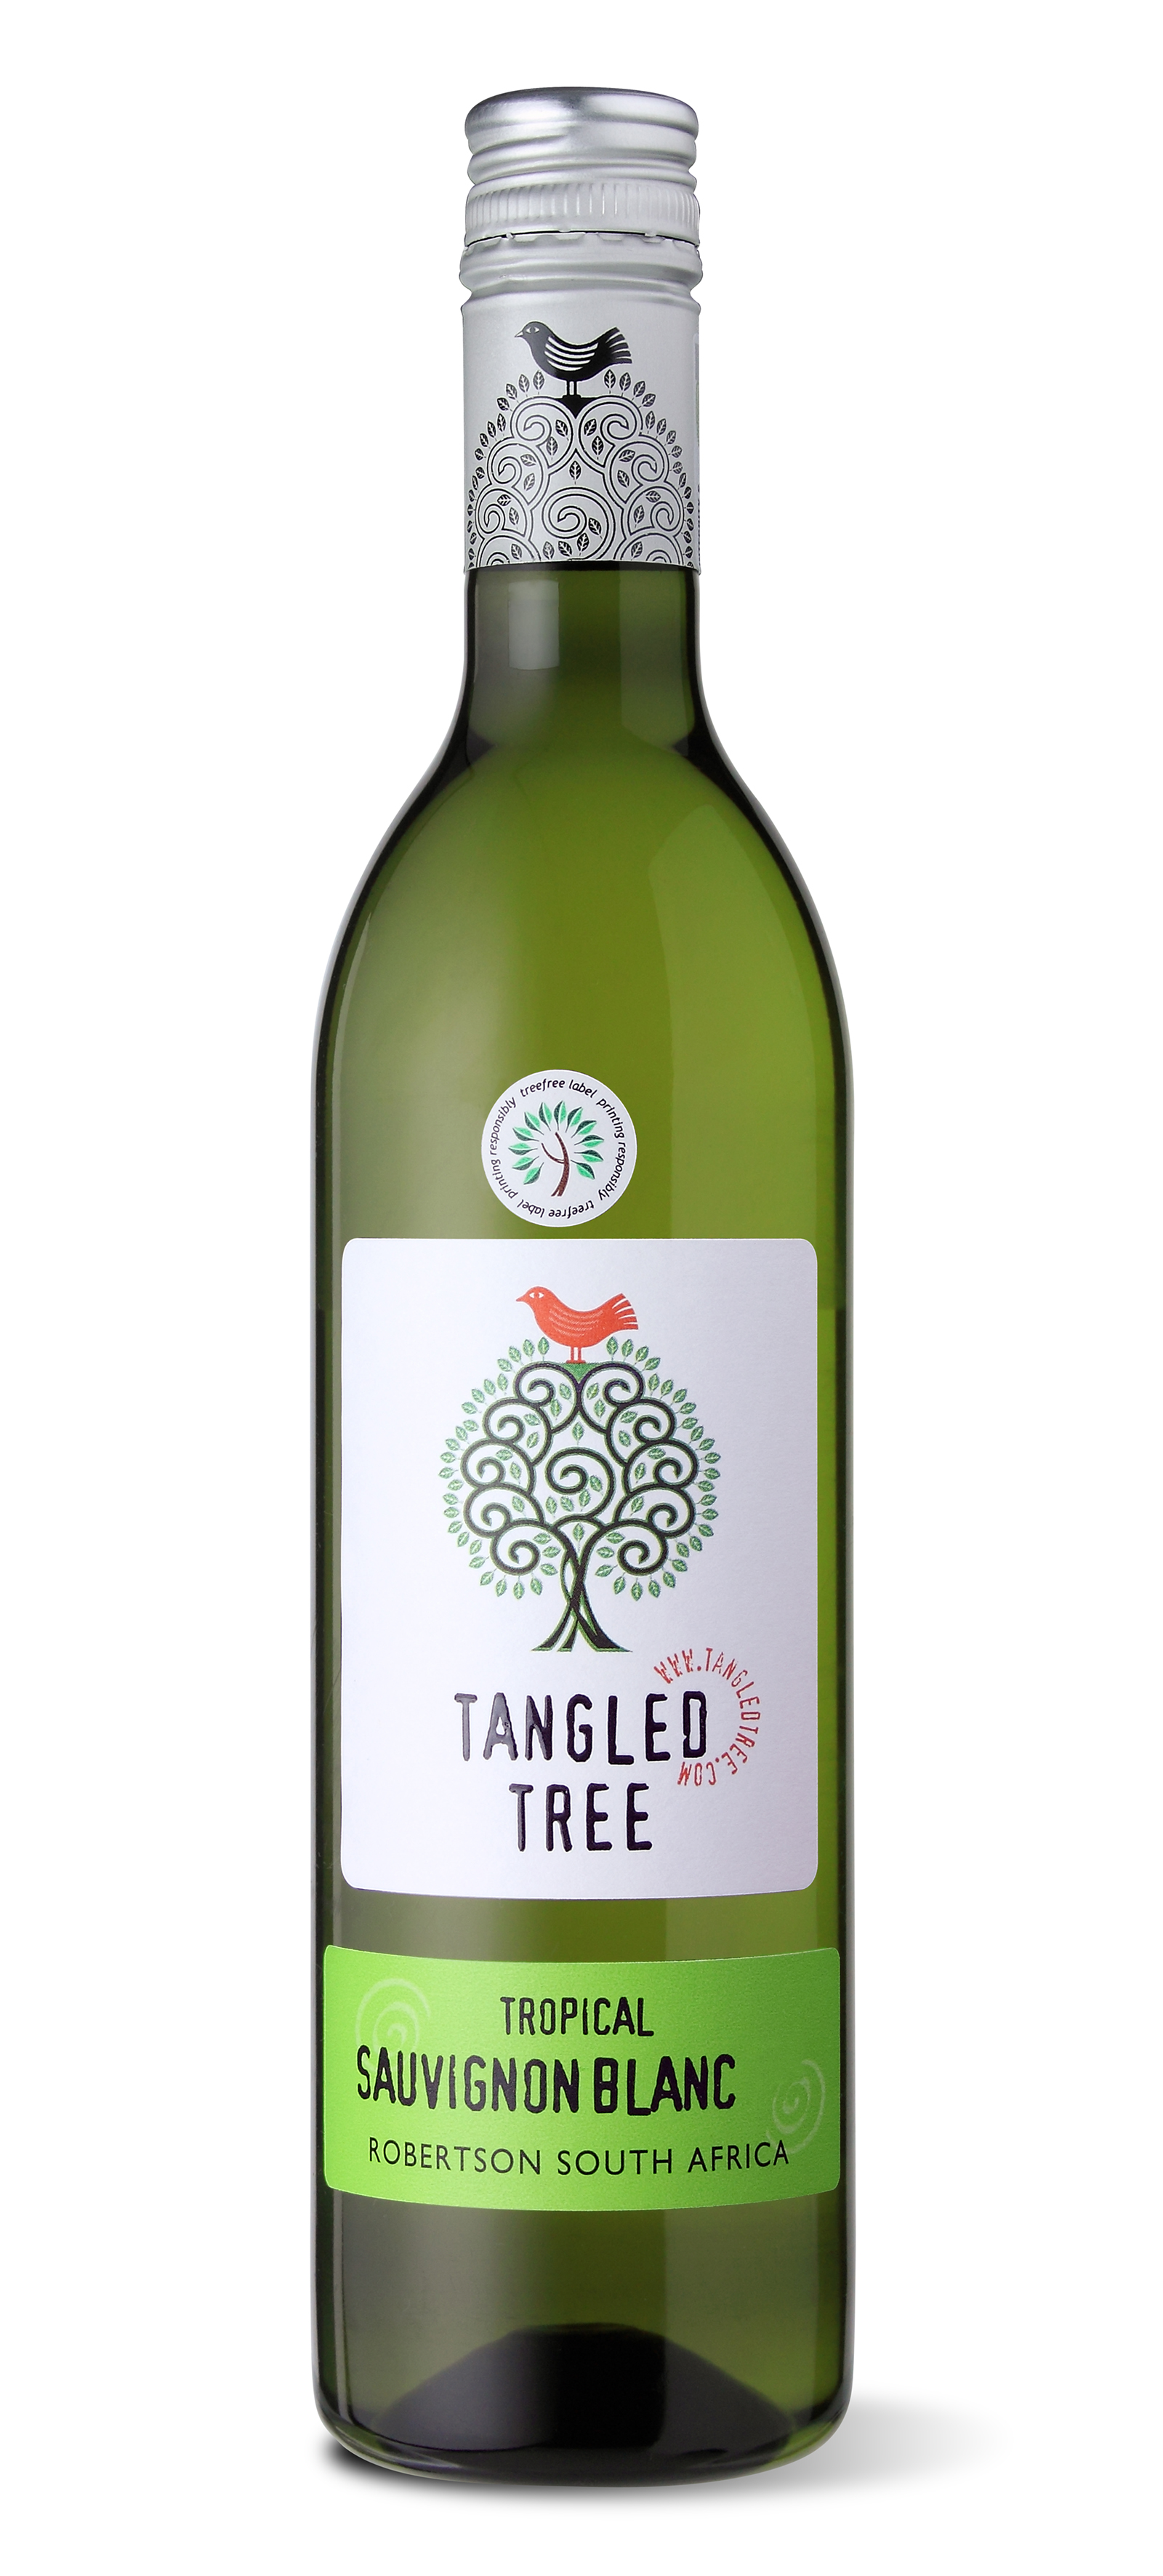 Tangled Tree Tropical Sauvignon Blanc 2012